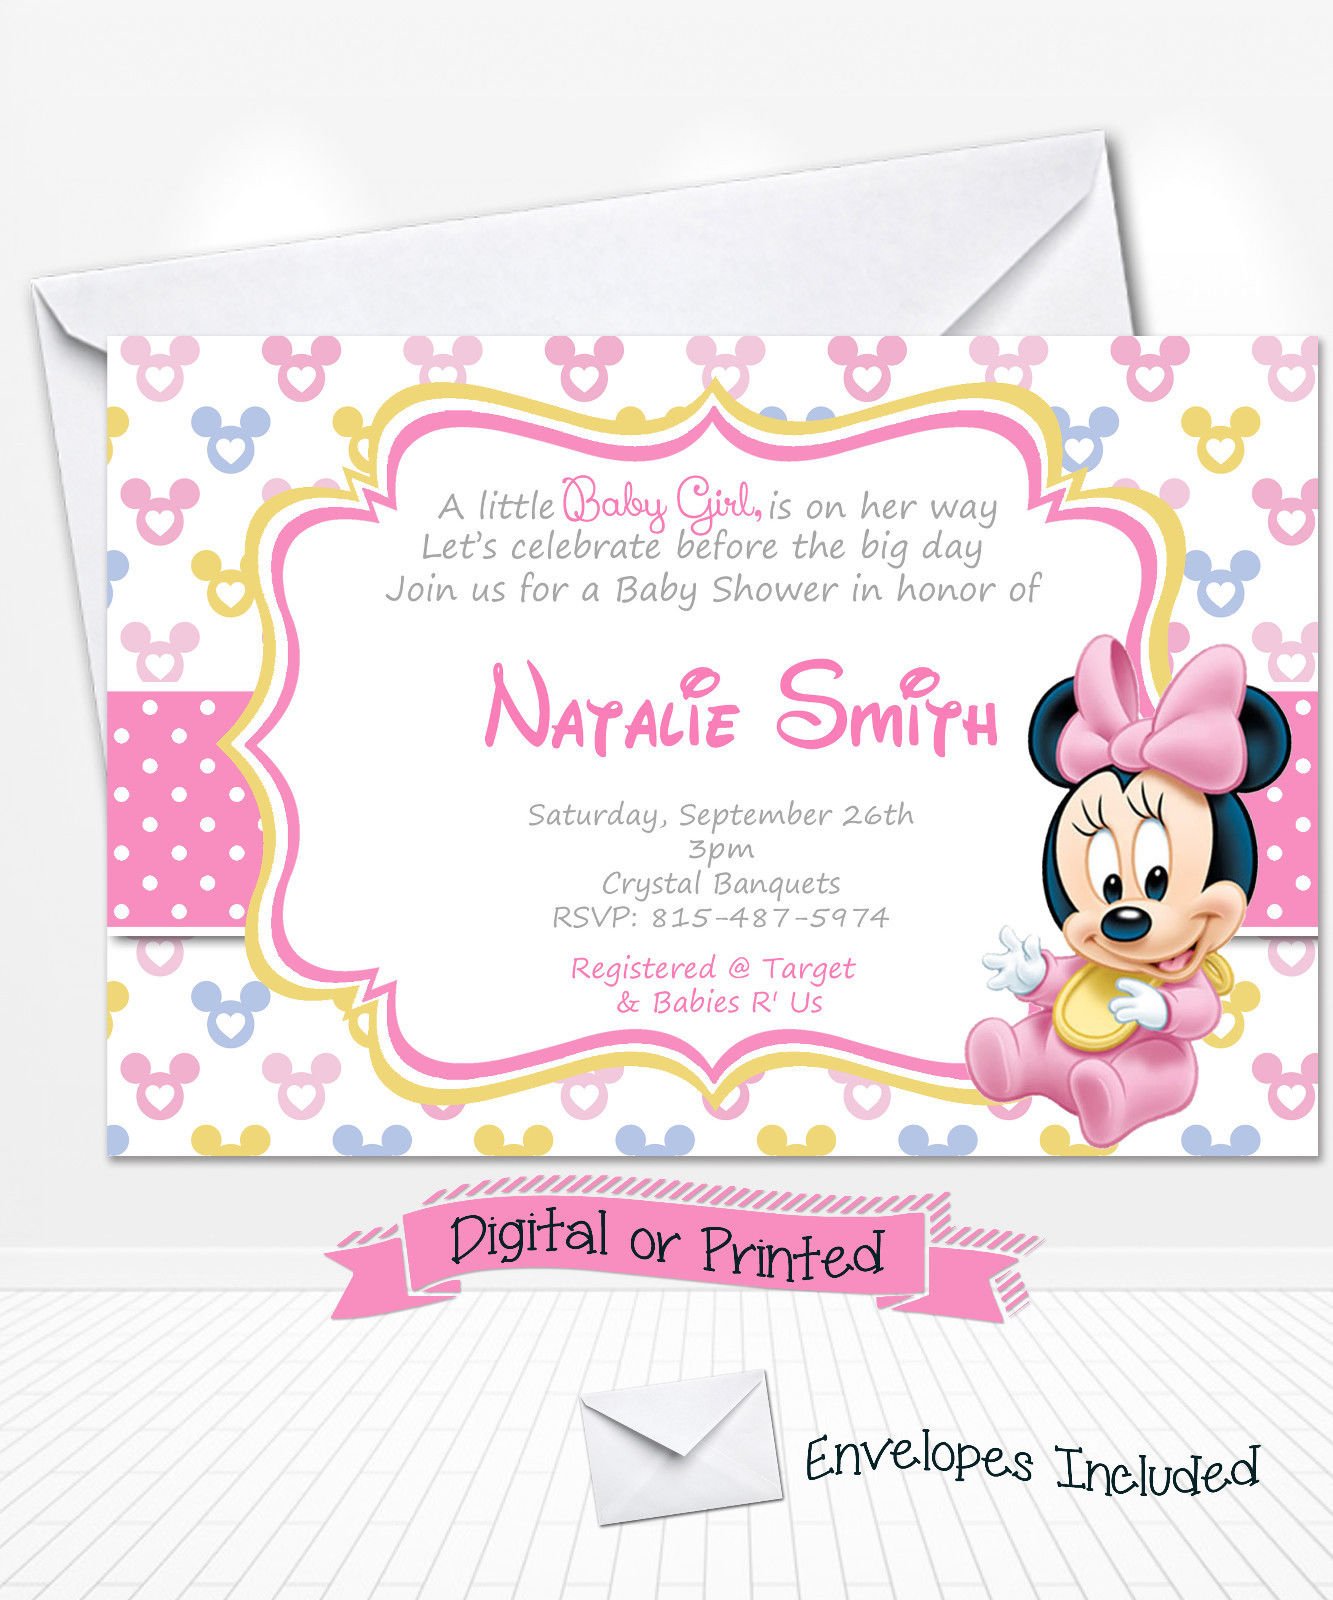 Modern Printed Baby Minnie Mouse Baby Shower Invitations Minnie Party regarding Review Minnie Mouse Baby Shower Invitations